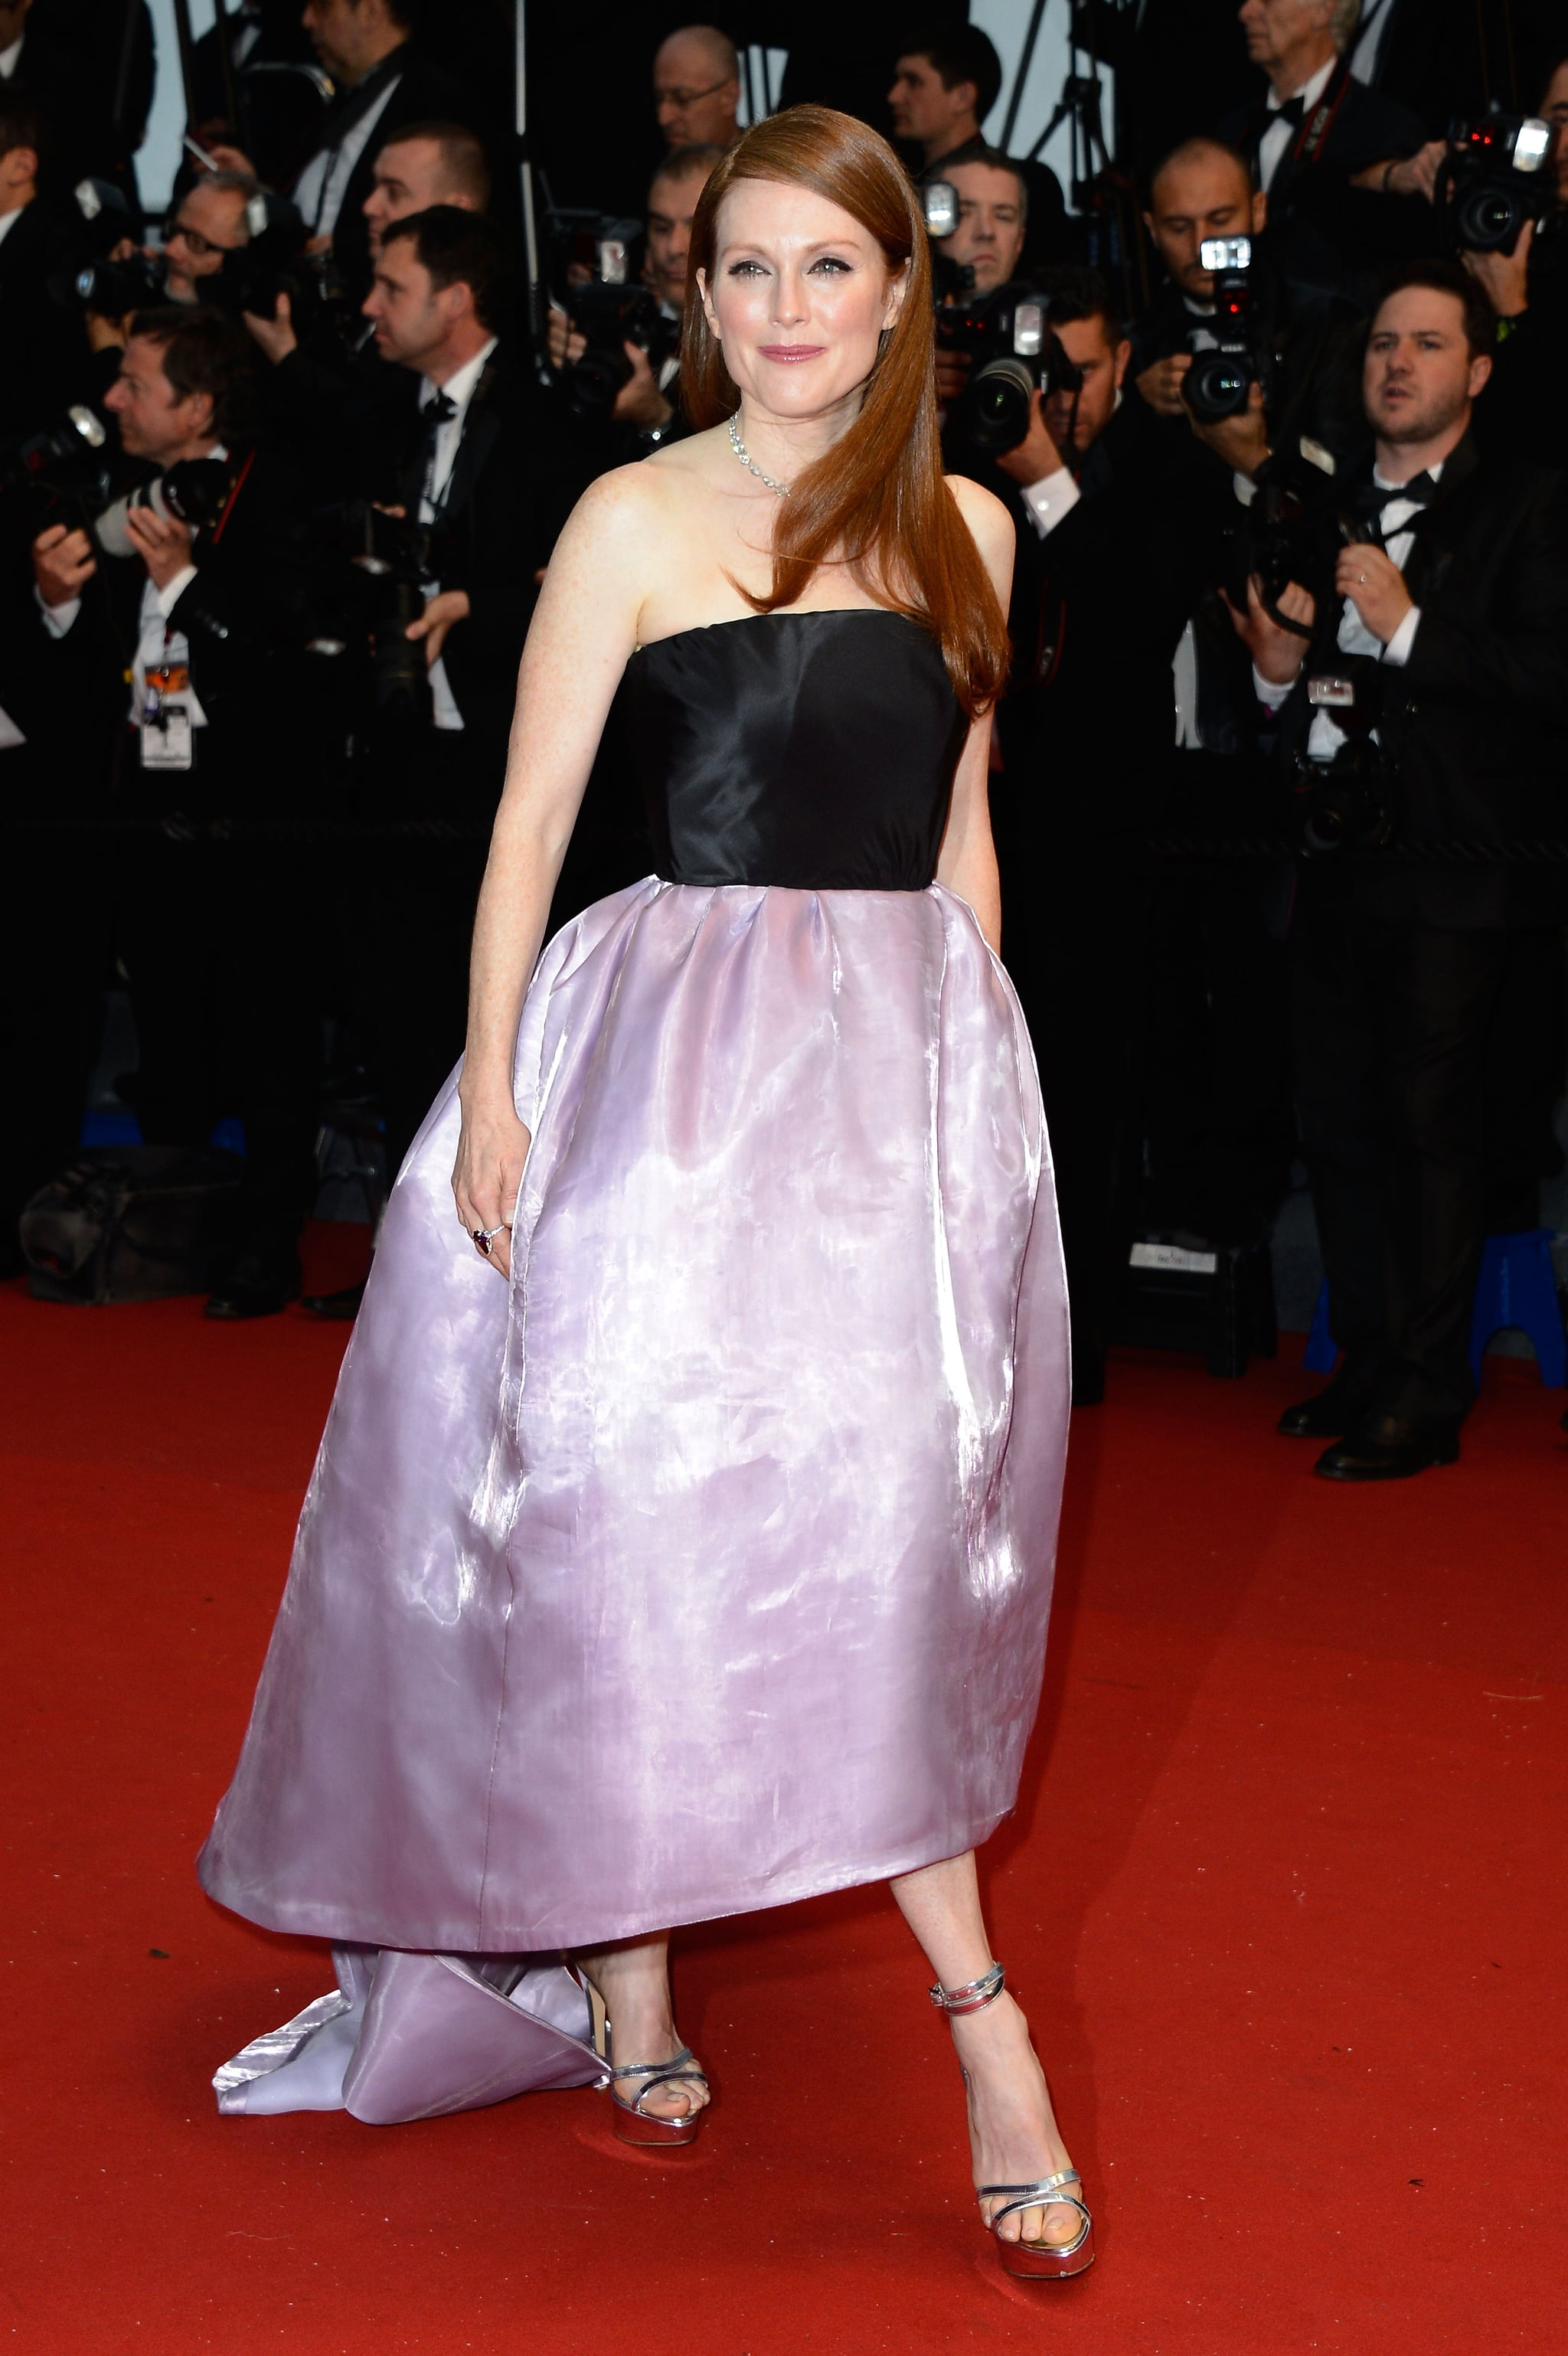 Julianne Moore walked the red carpet at the 2013 Cannes Film Festival.